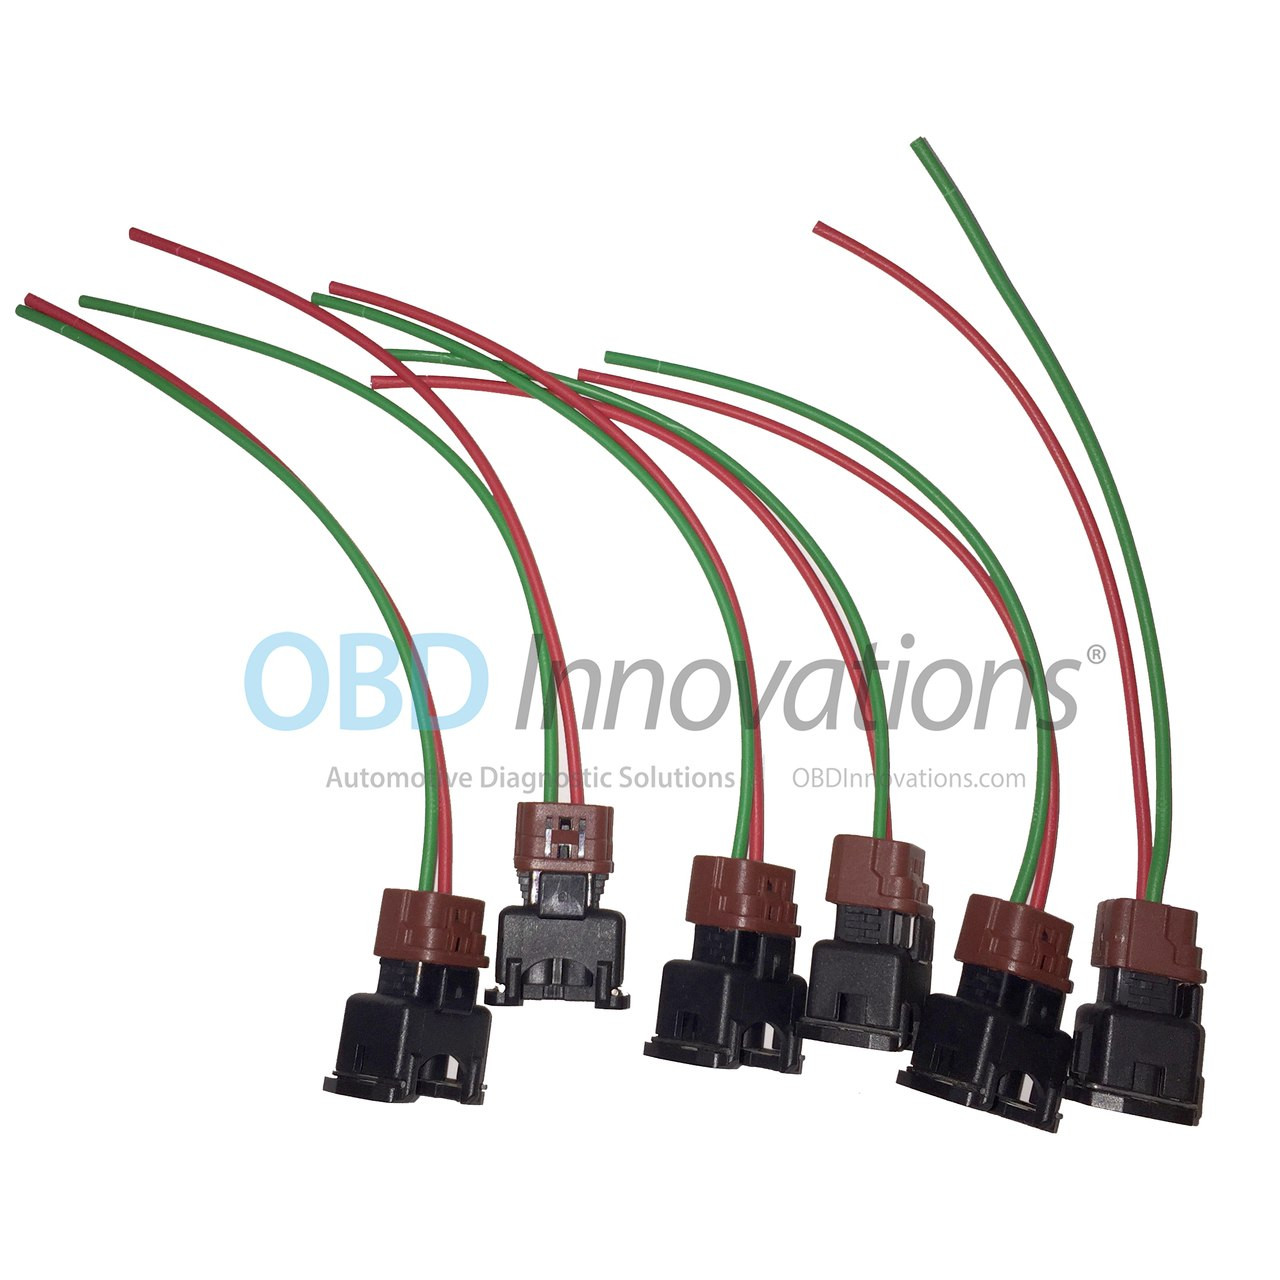 small resolution of fuel injector connector 300zx z32 90 94 tt obd innovations fuel injector connectors wiring harness fits nissan 300zx 1990